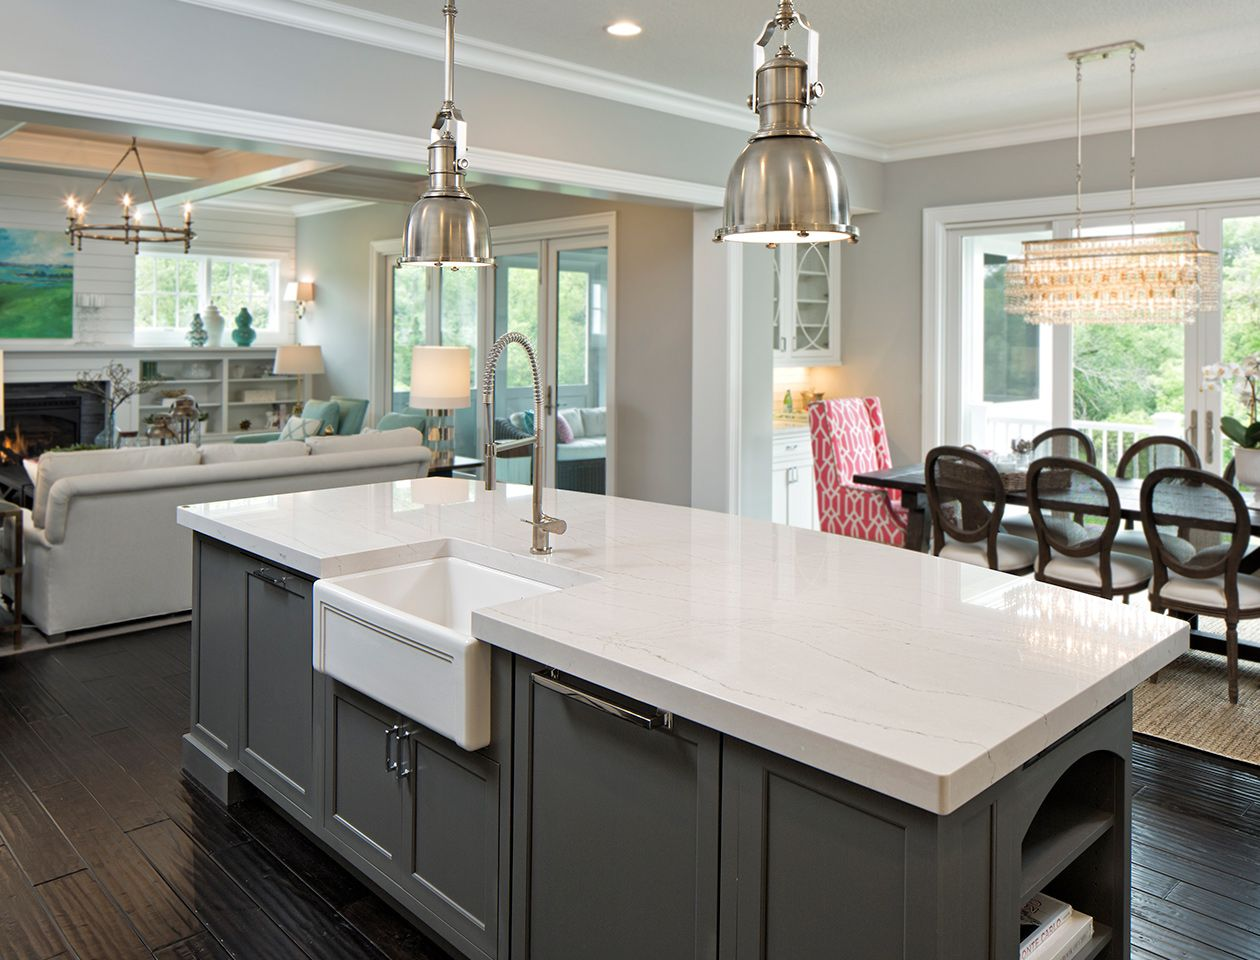 What Color Countertops Go With White Cabinets 15 Stunning Quartz Countertop Colors To Gather Inspiration